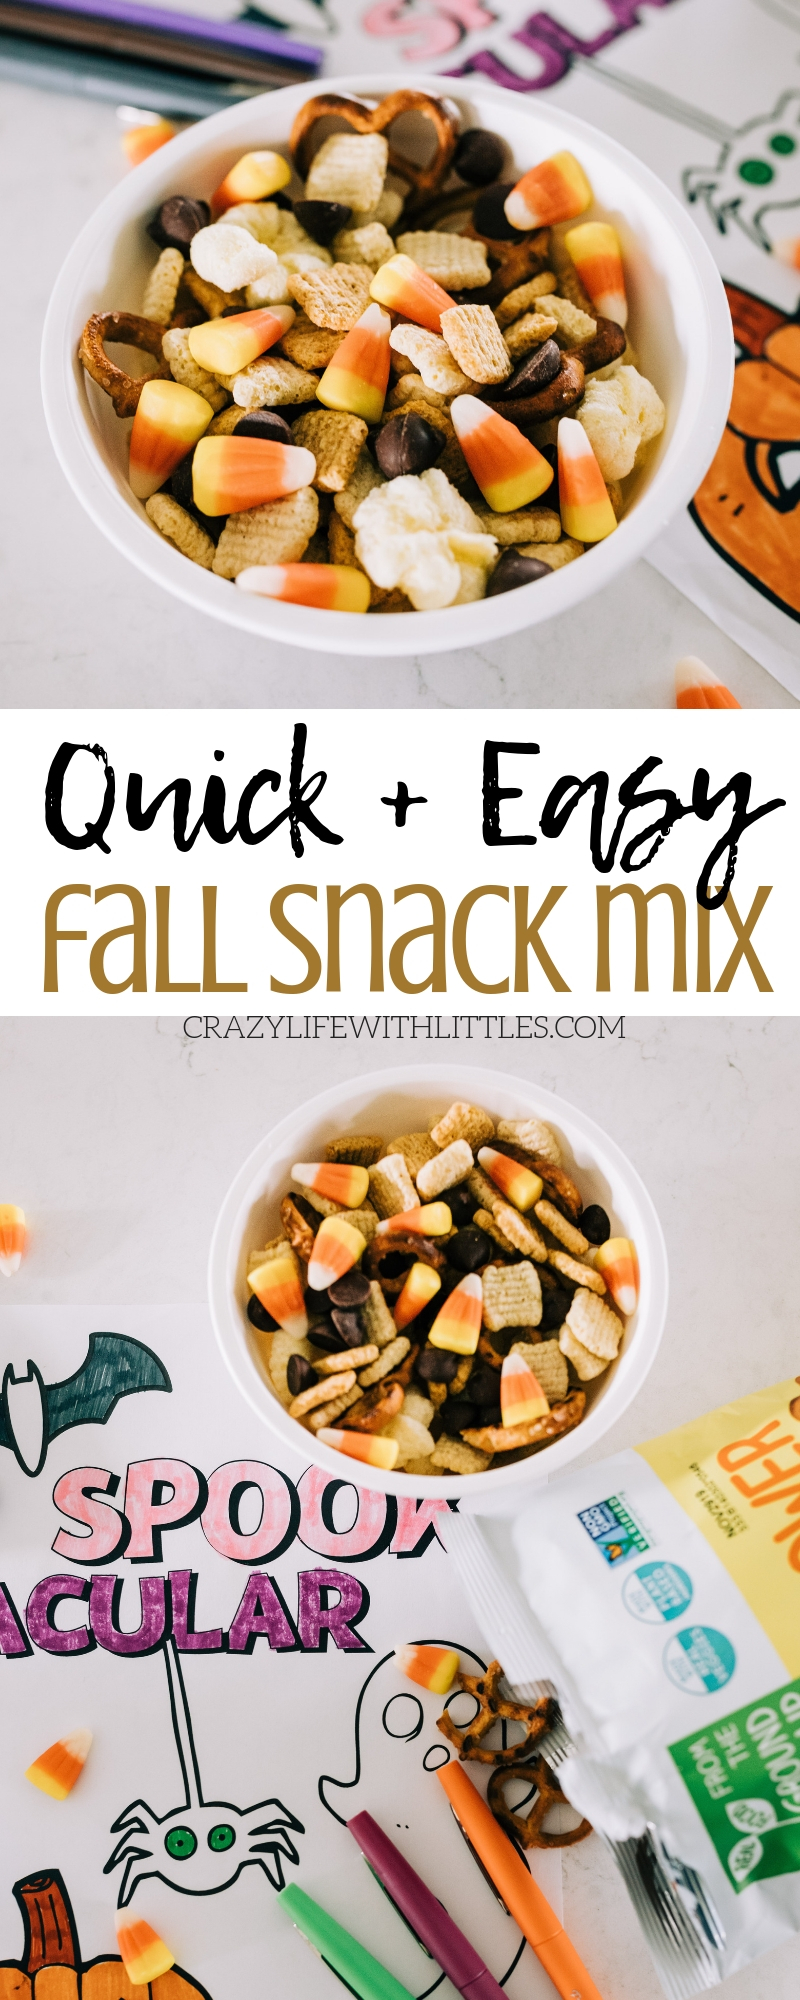 Quick and Easy Fall Snack Mix for Kids, #fallsnackmix #harvestmix #candycorn Celebrate Halloween and Fall with this snack mix made with better ingredients and less sugar than the typical mix.